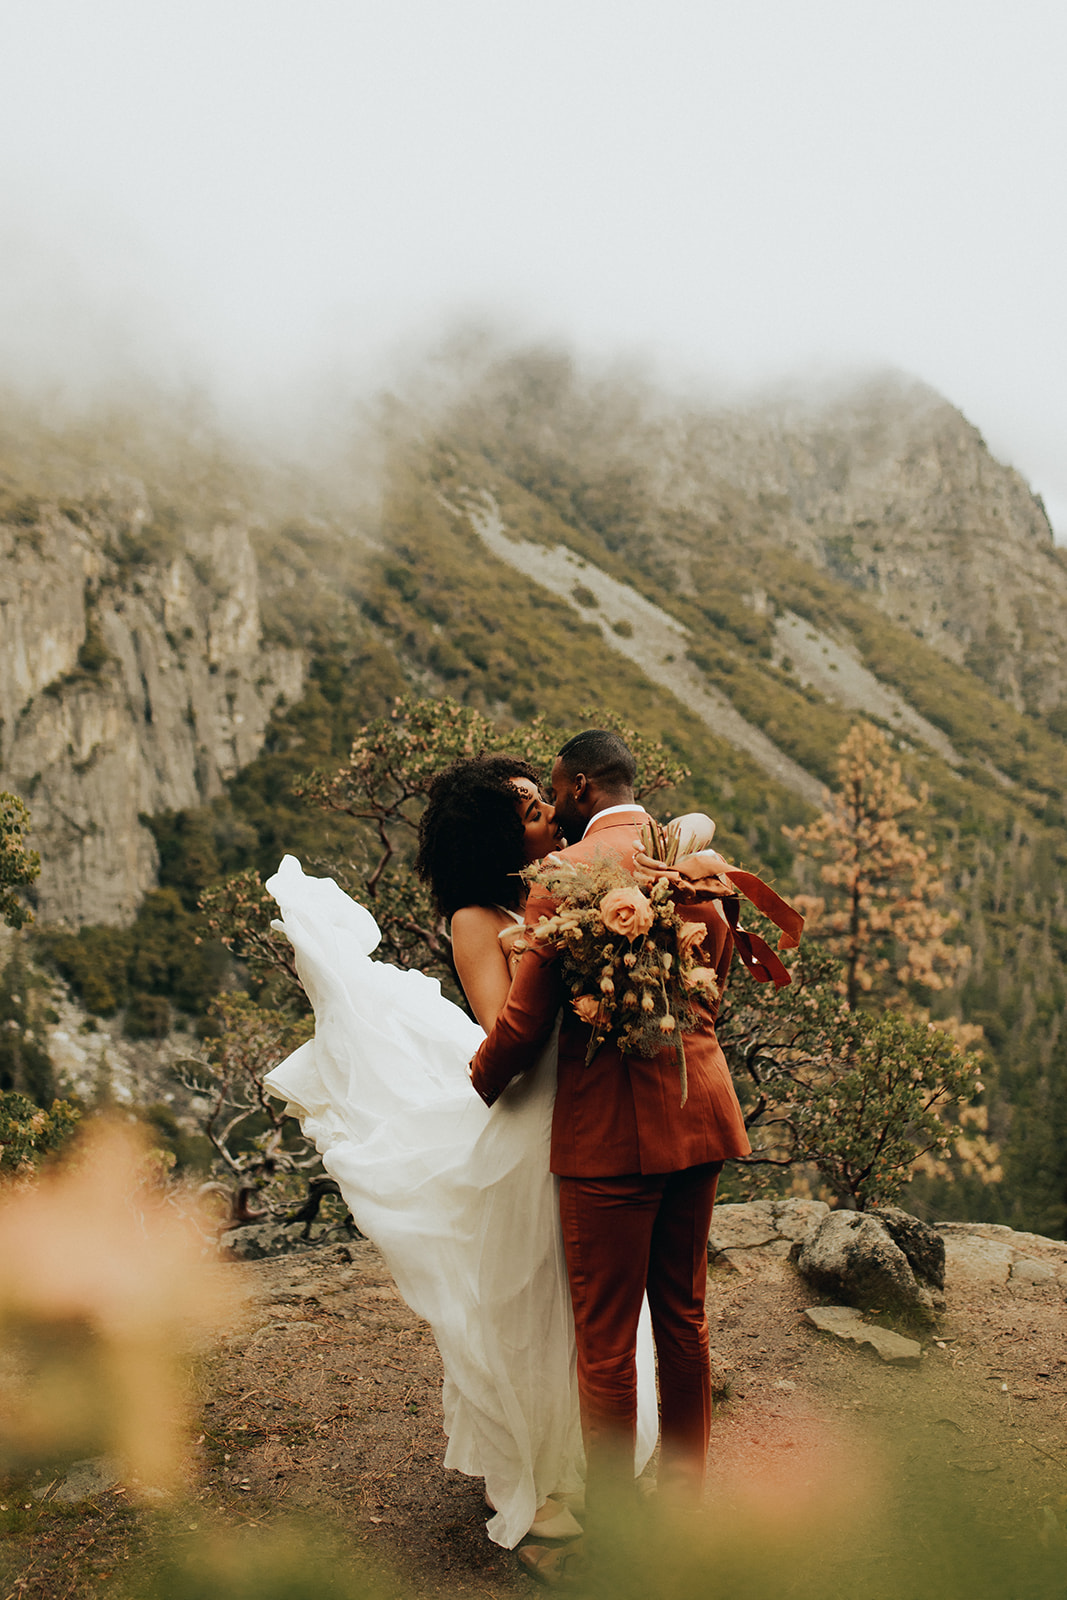 Yosemite_Elopement_Hannah_Alena_Photo_Portland_Wedding_Photographer-91.jpg